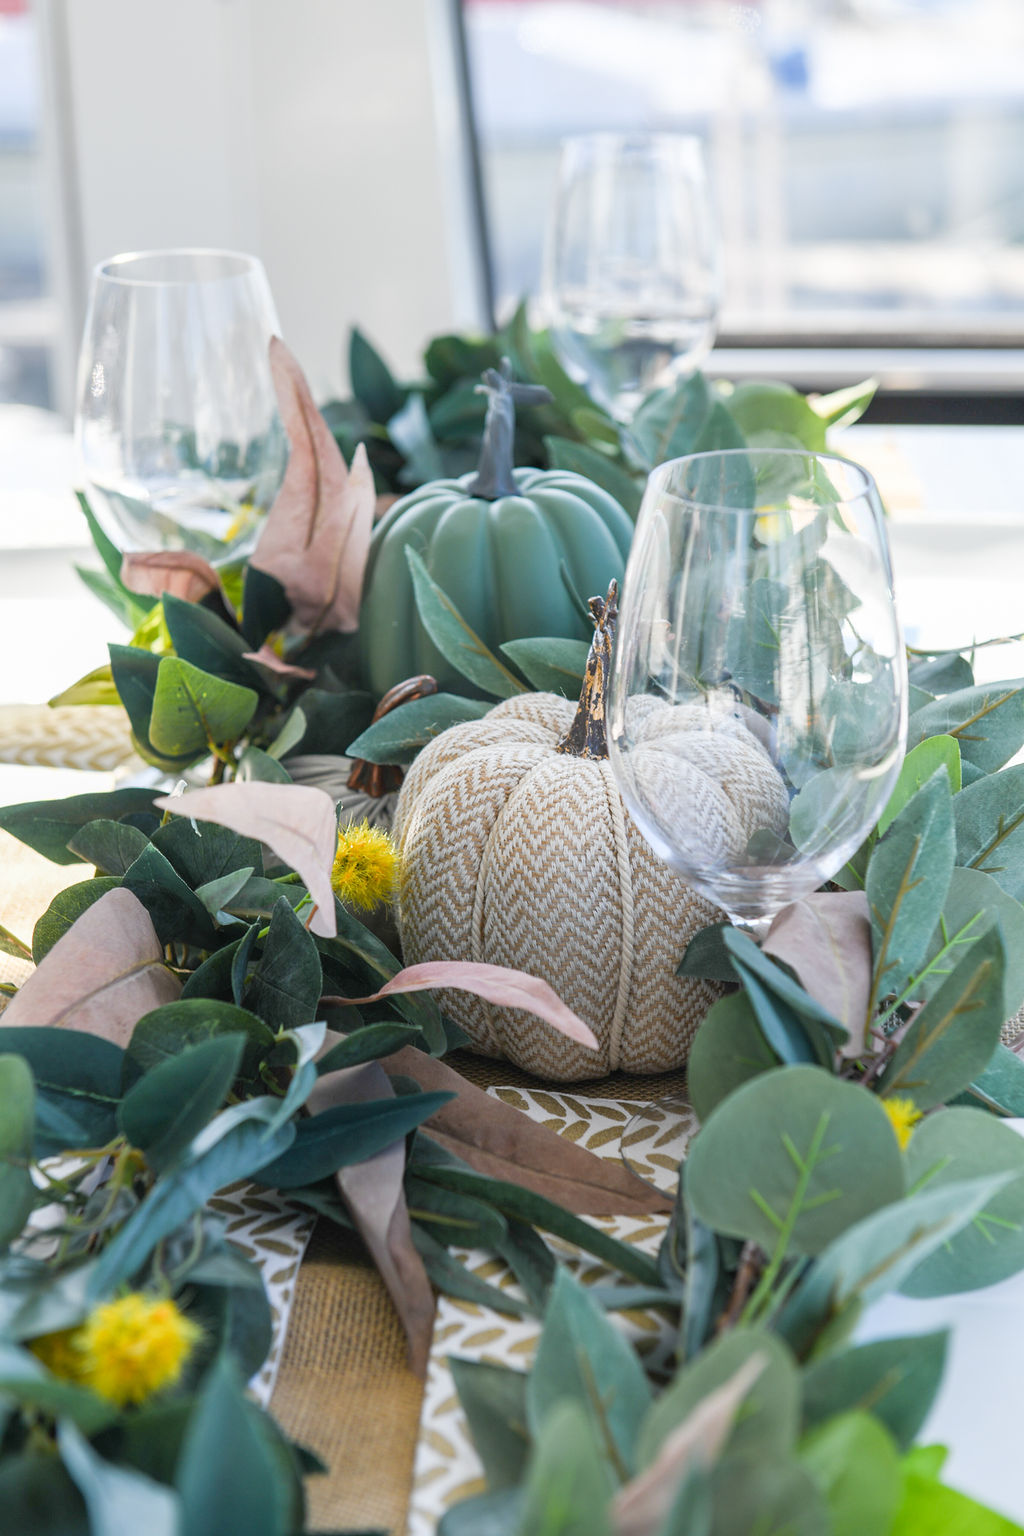 I also grabbed a couple of faux garlands to lay across the table. And that runner is simple burlap.